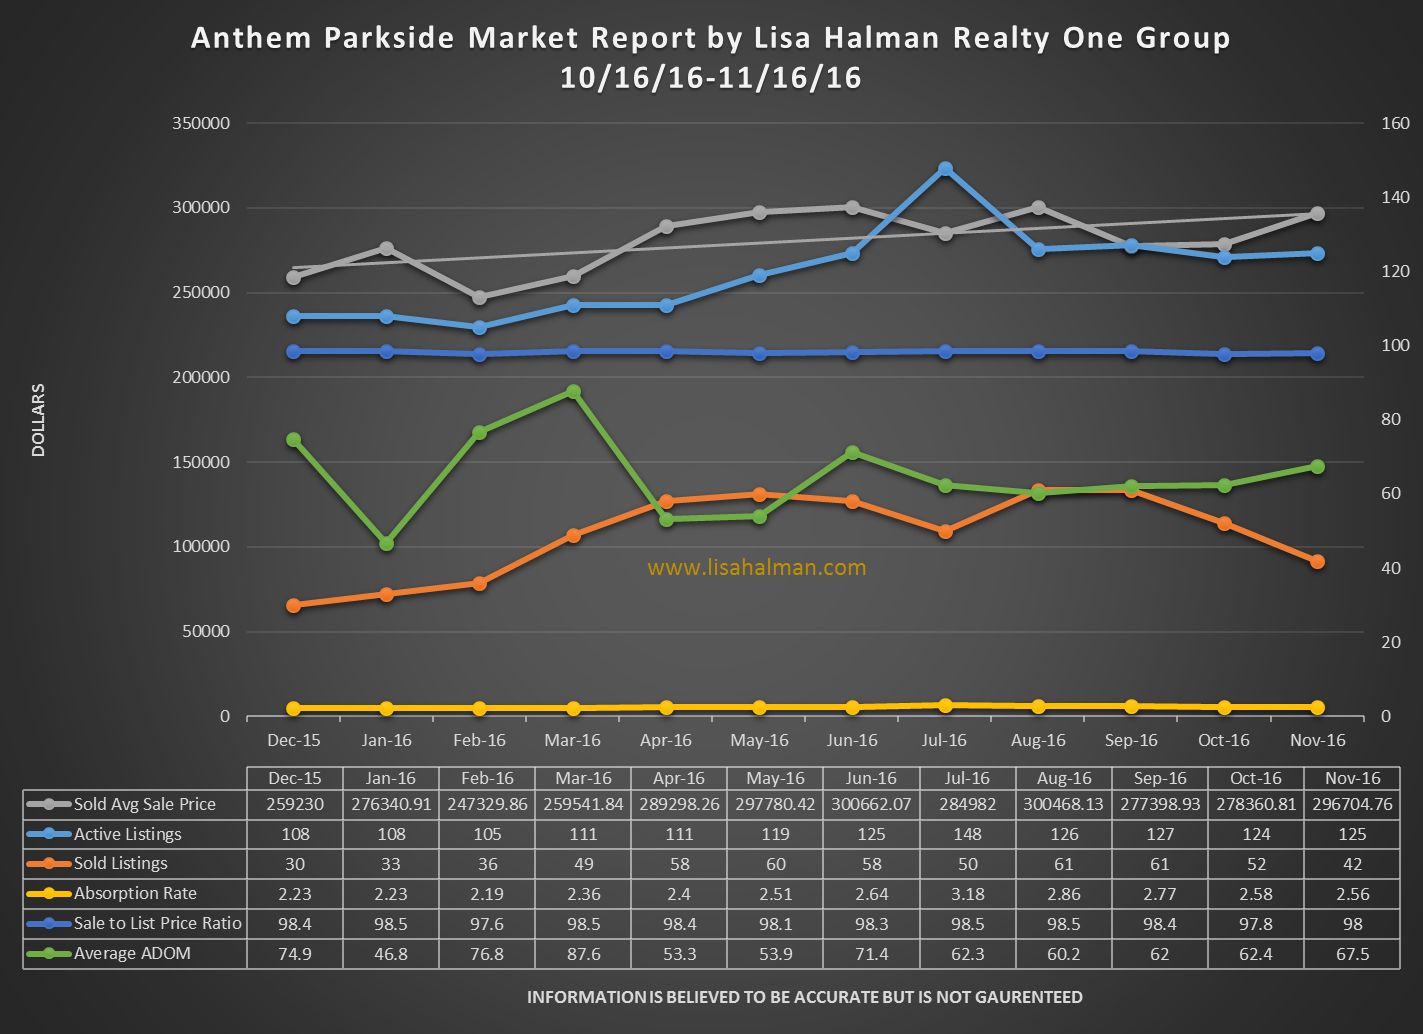 Anthem Parkside Market Report November 2016